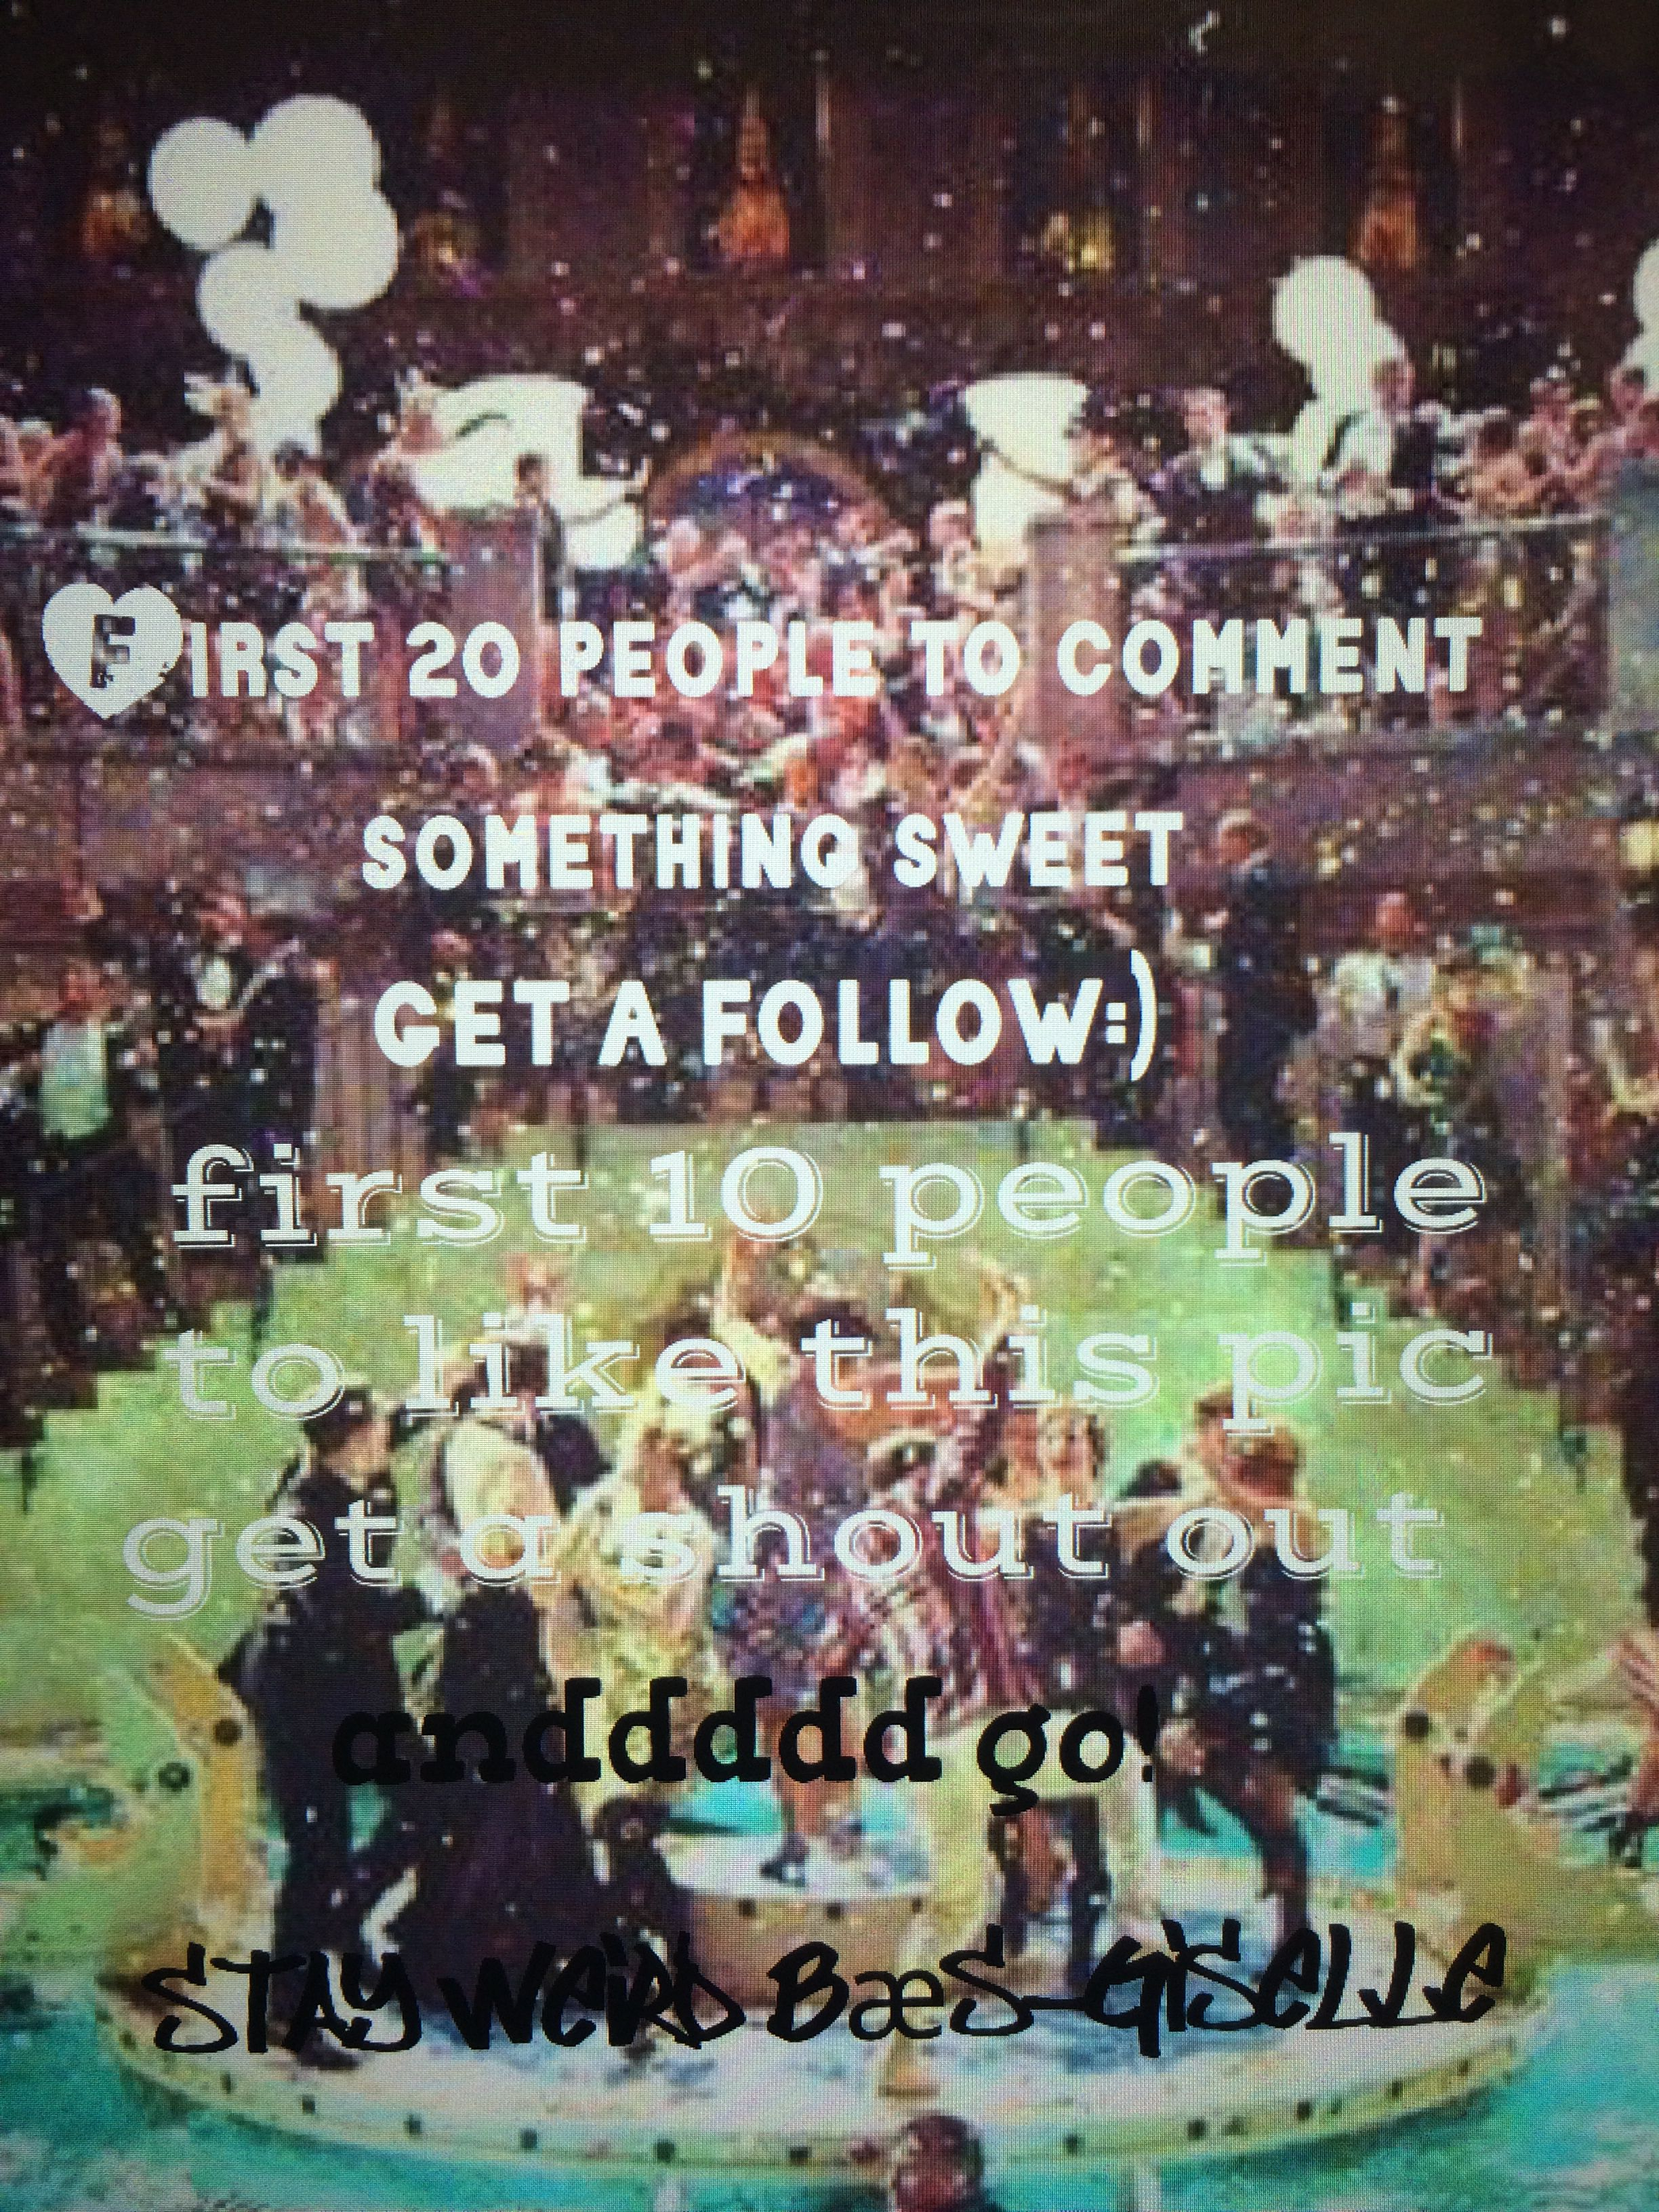 Go u must be following first